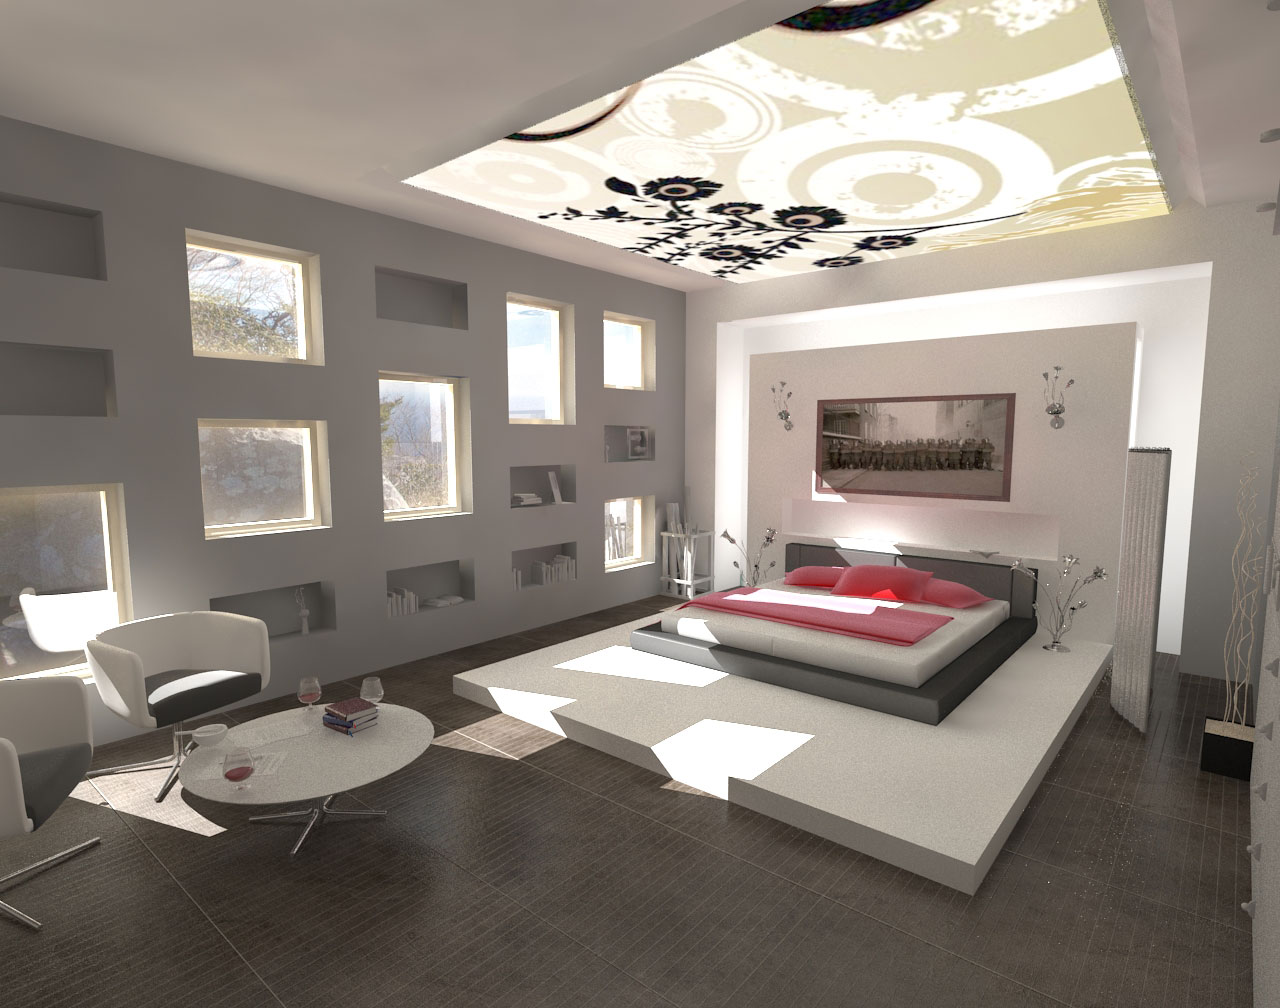 Decorations minimalist design modern bedroom interior for Interior decoration bedroom photos